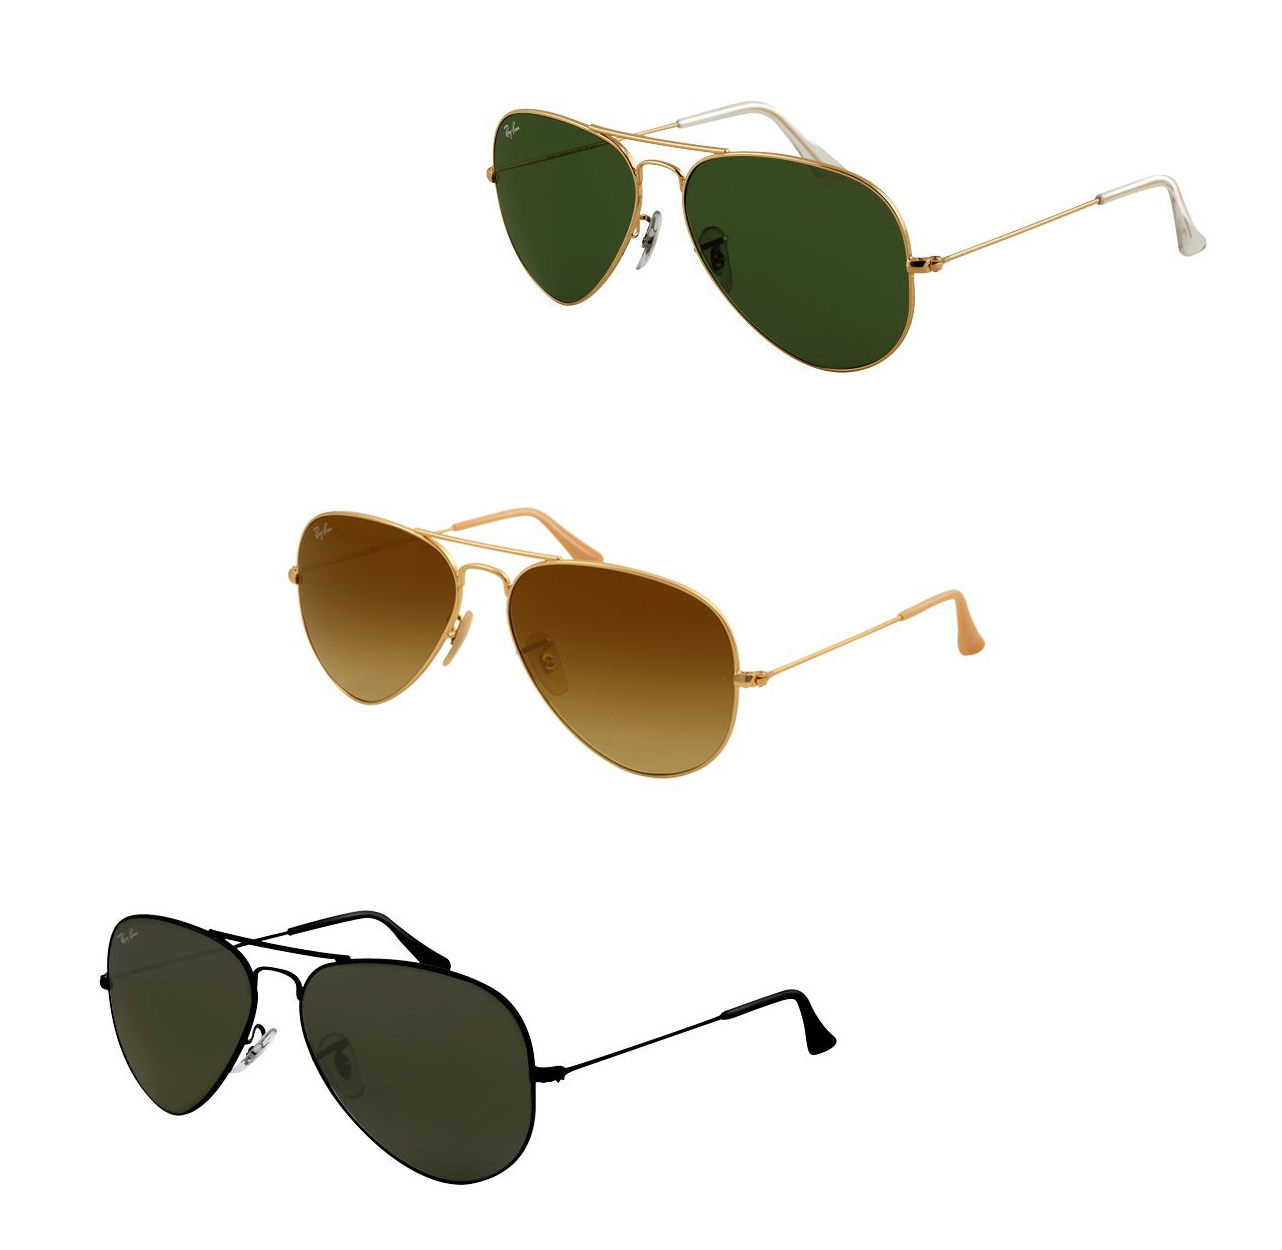 fcac433043 Ray-Ban RB3025 Aviator Large Metal Sunglasses - 86 Models